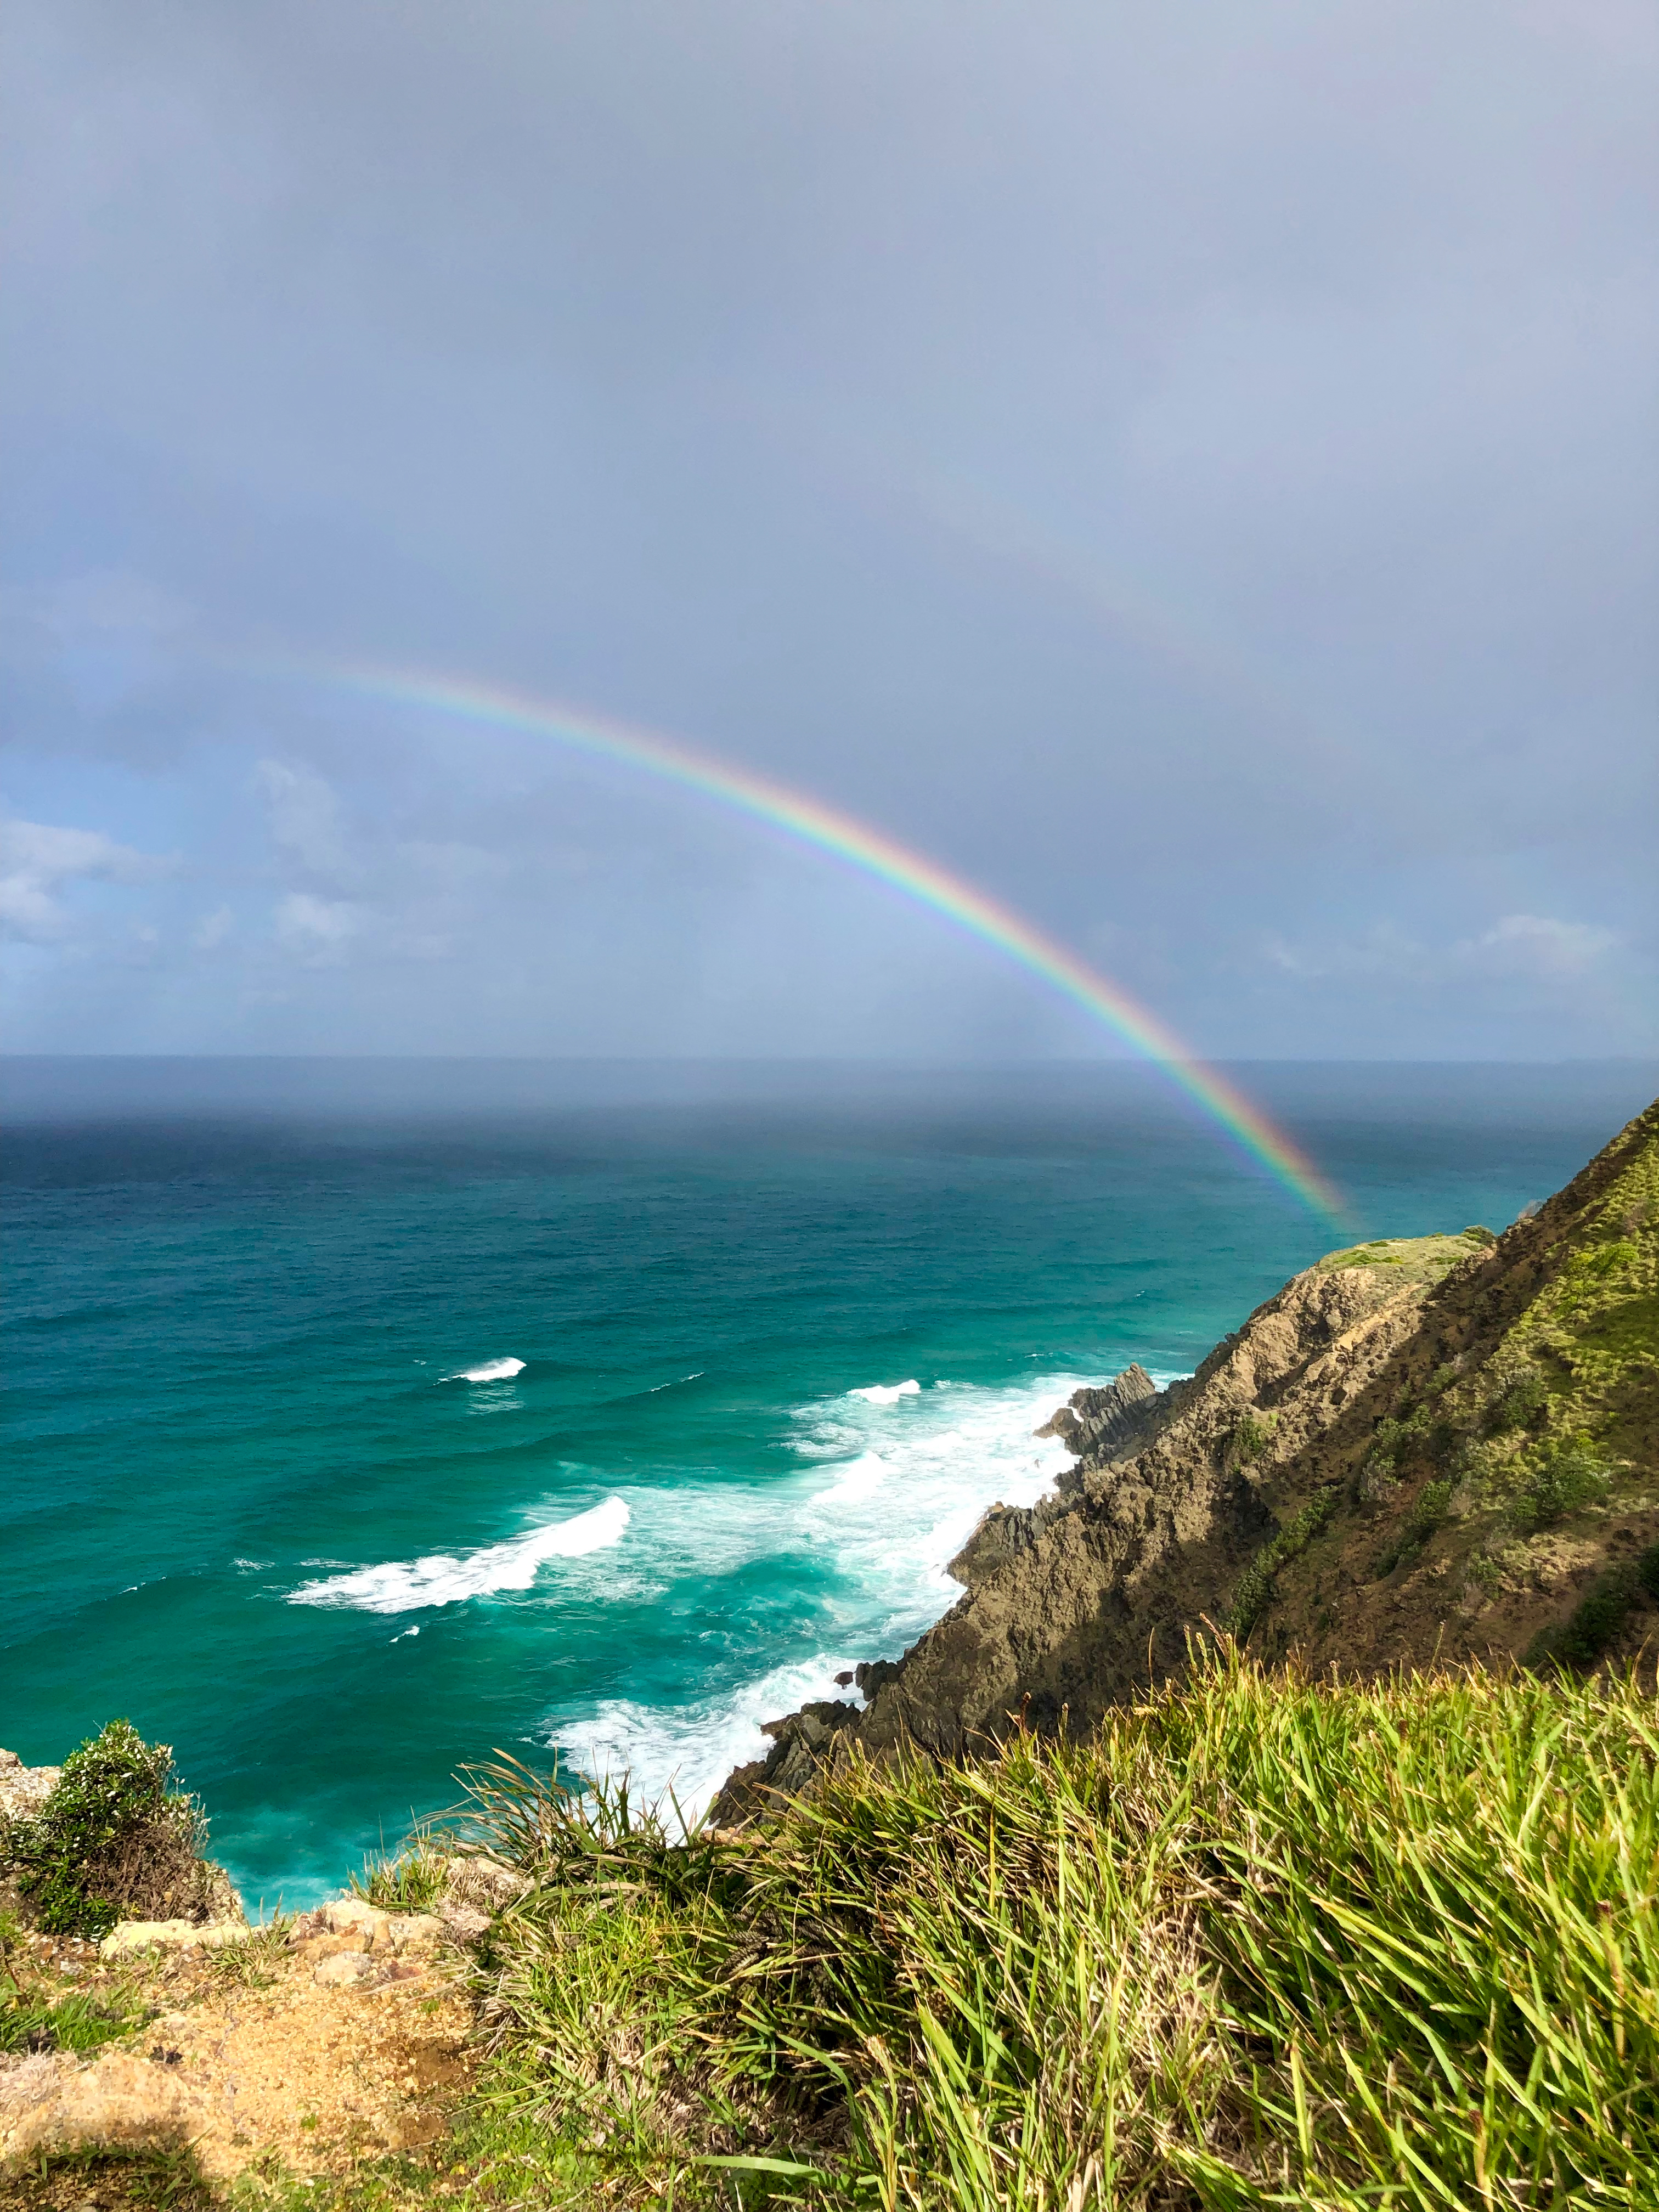 Byron Bay Lighthouse - one of Top 4 Day Trips From Brisbane